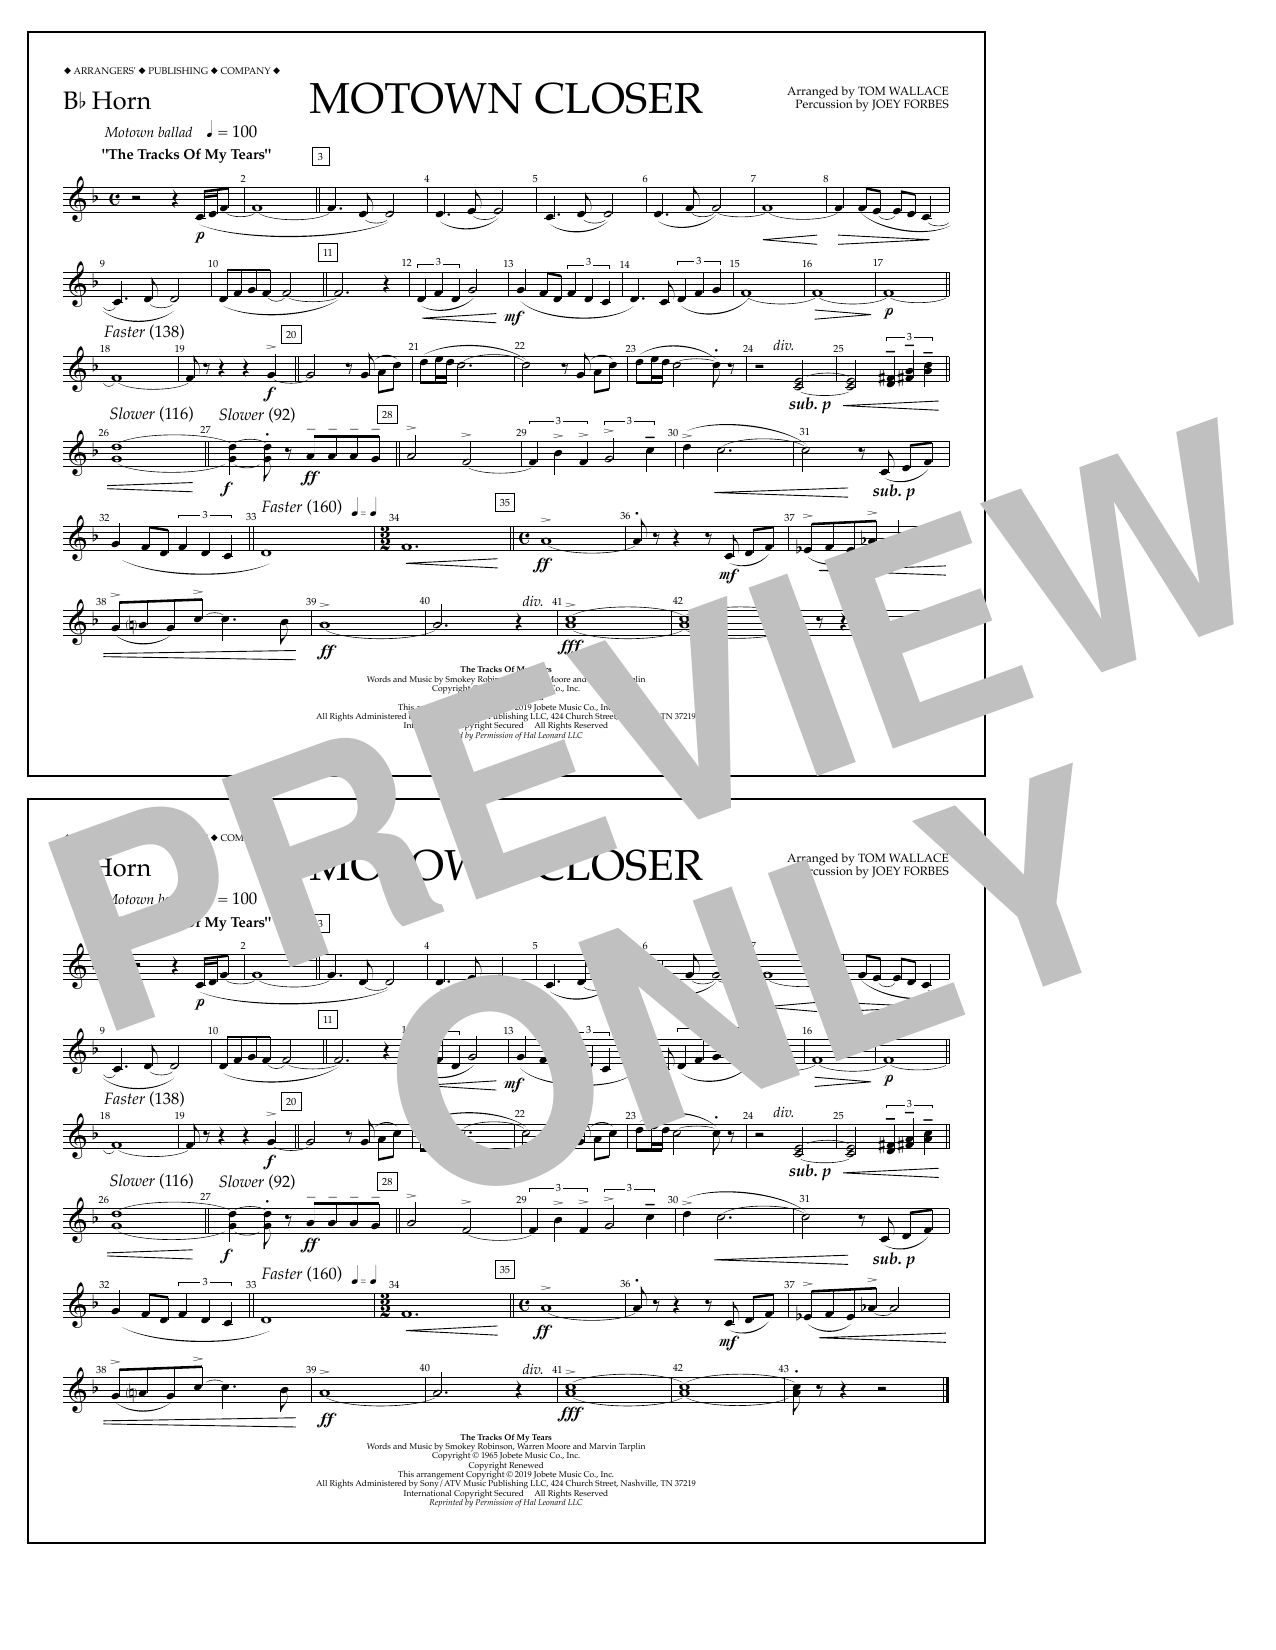 Smokey Robinson Motown Closer (arr. Tom Wallace) - Bb Horn sheet music notes and chords. Download Printable PDF.